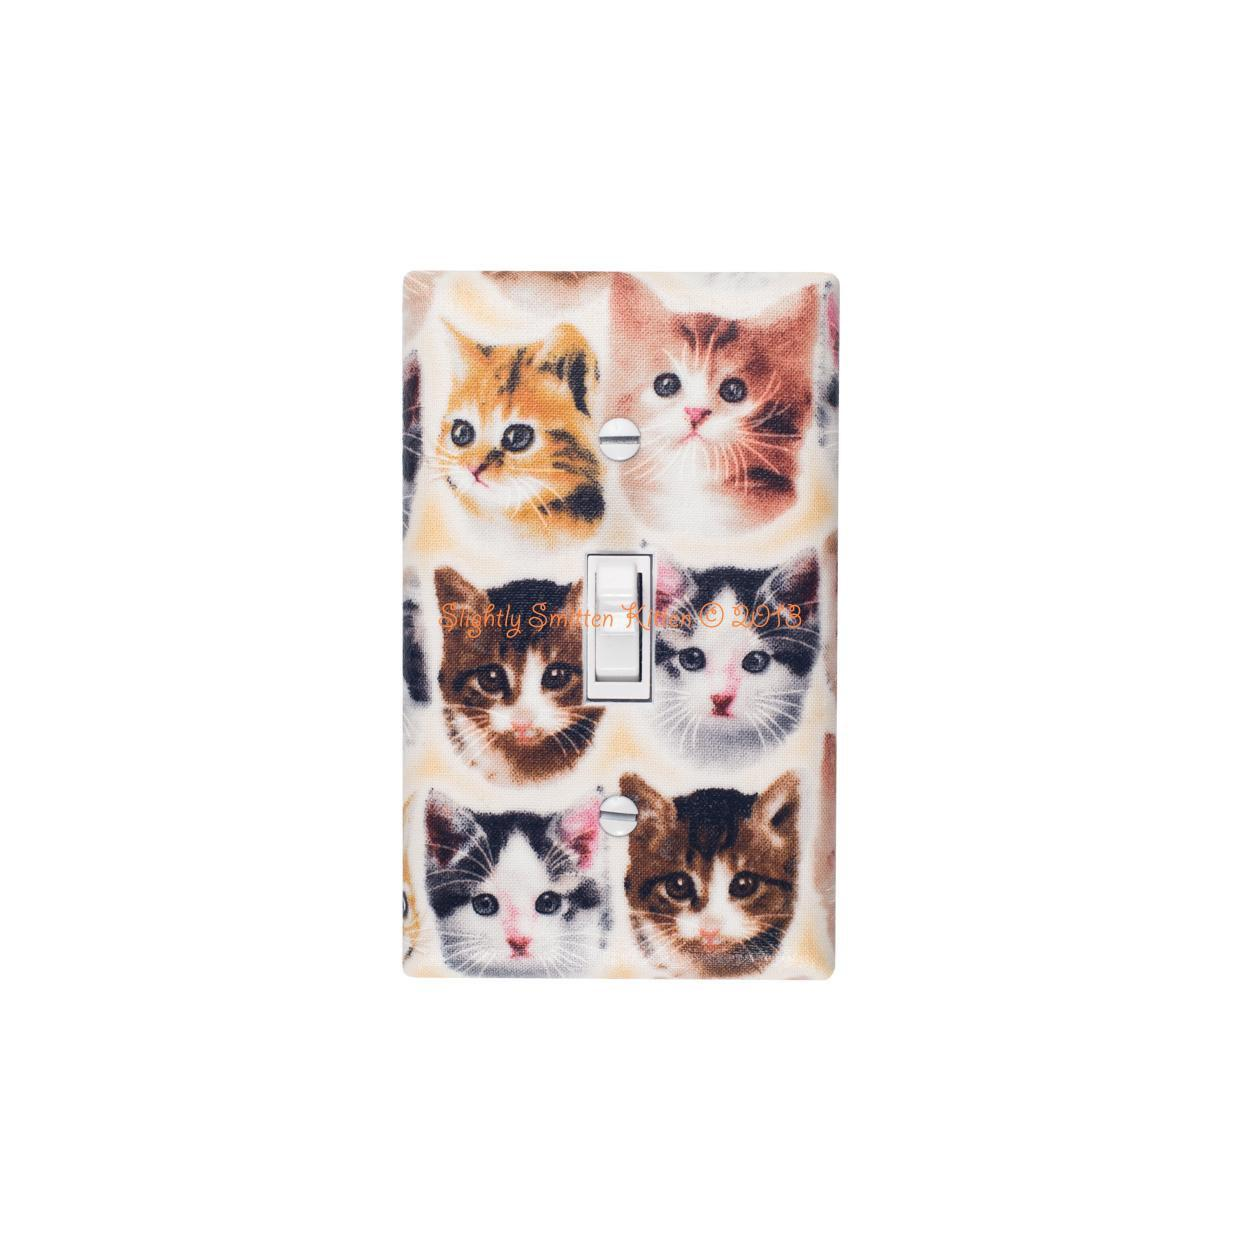 Kitten Face Light Switch Plate Cover Girls Room Cat Lover